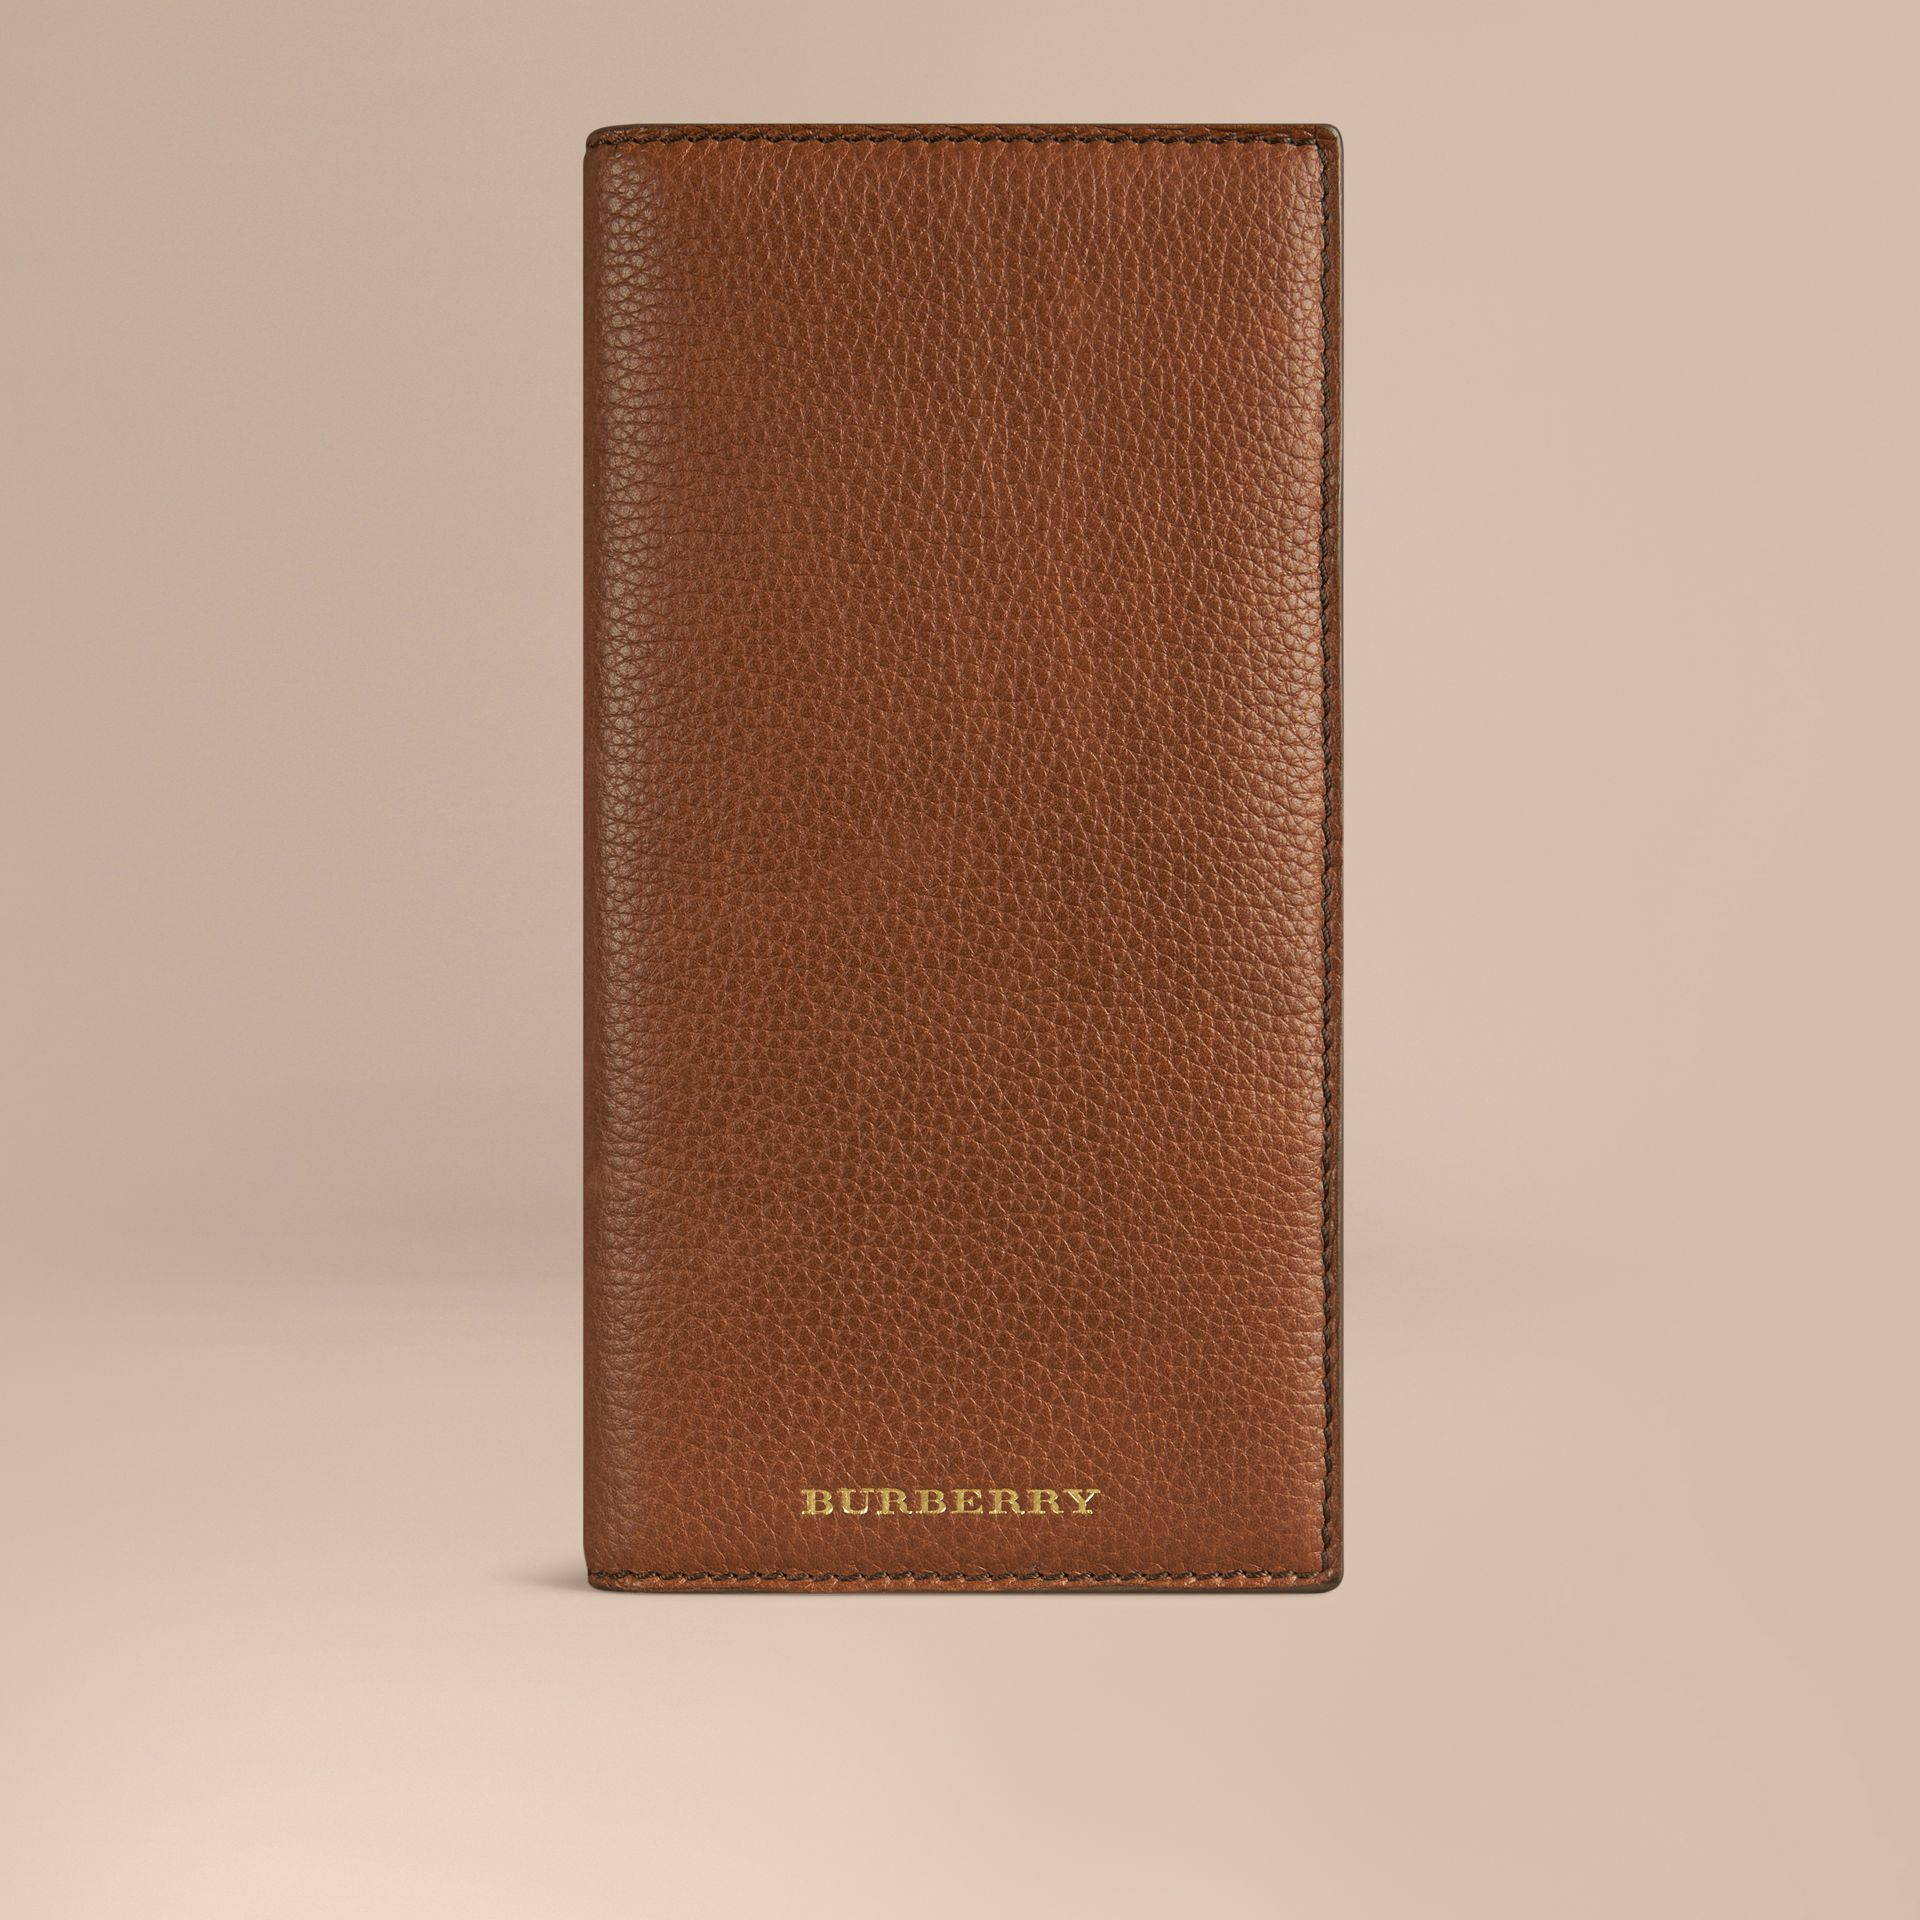 Grainy Leather Travel Card Case in Tan - Men | Burberry - gallery image 1